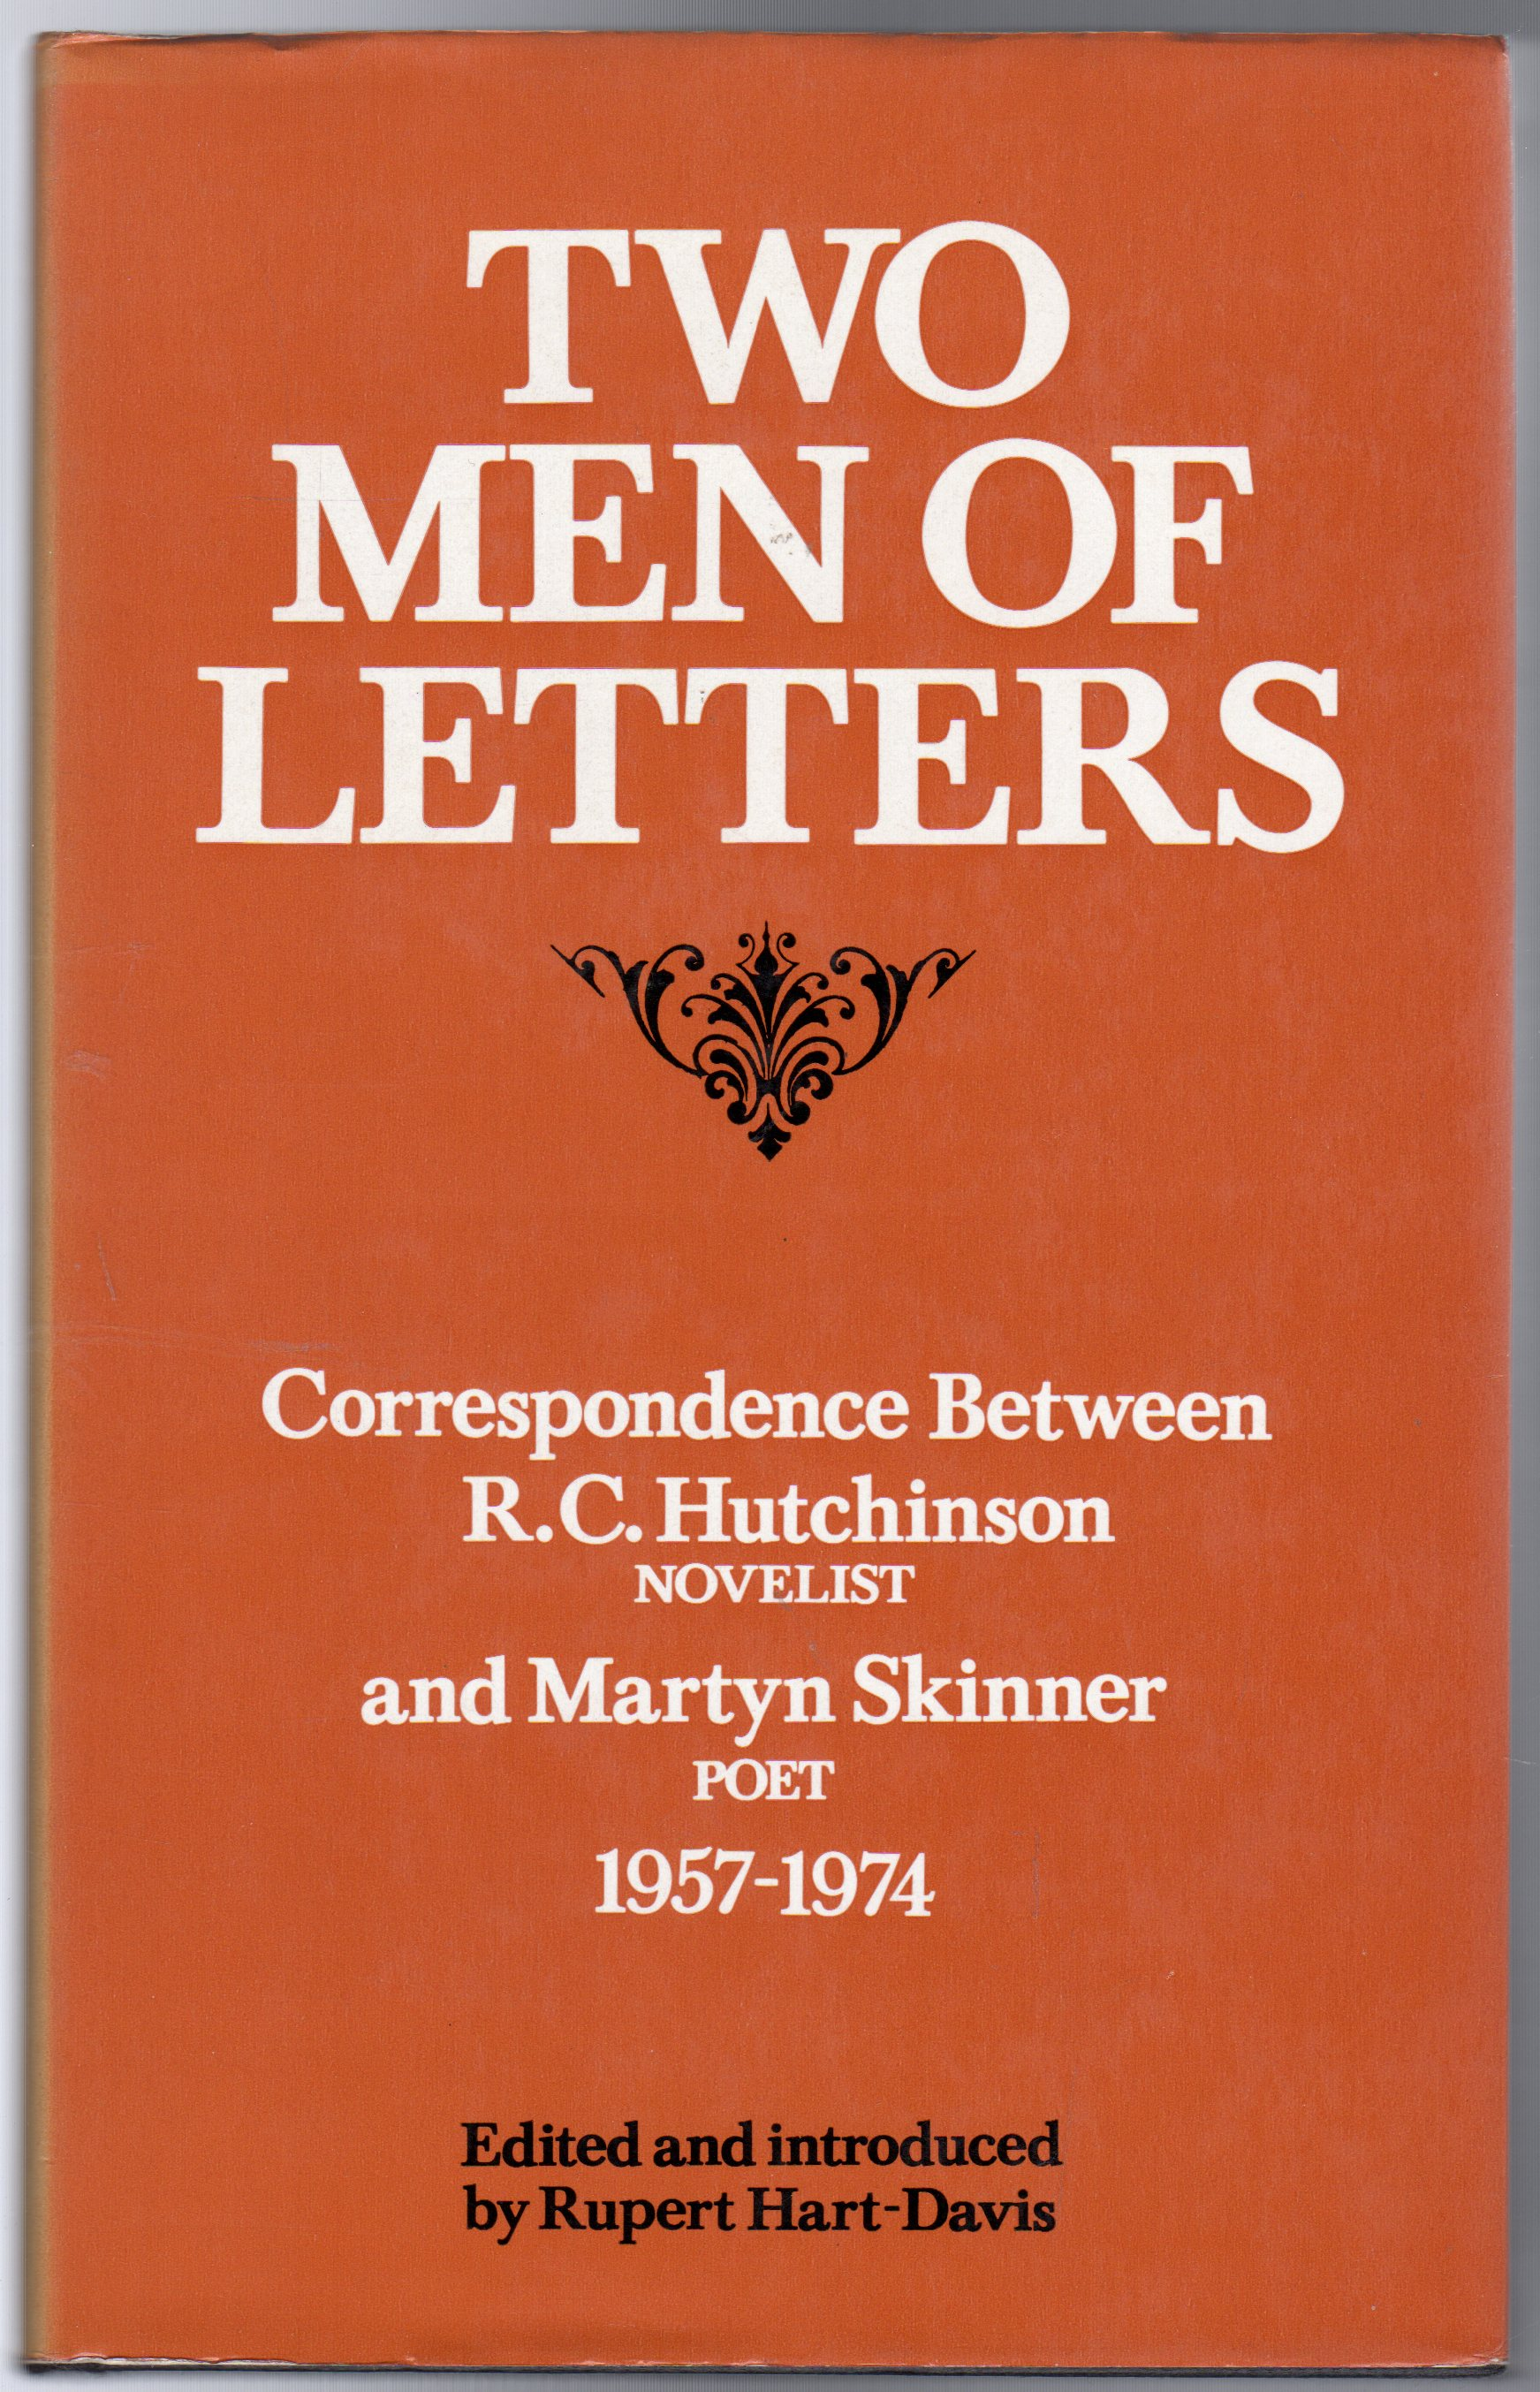 Image for Two Men of Letters : Correspondence Between R.C.Hutchinson, Novelist, and Martyn Skinner, Poet, 1957-74